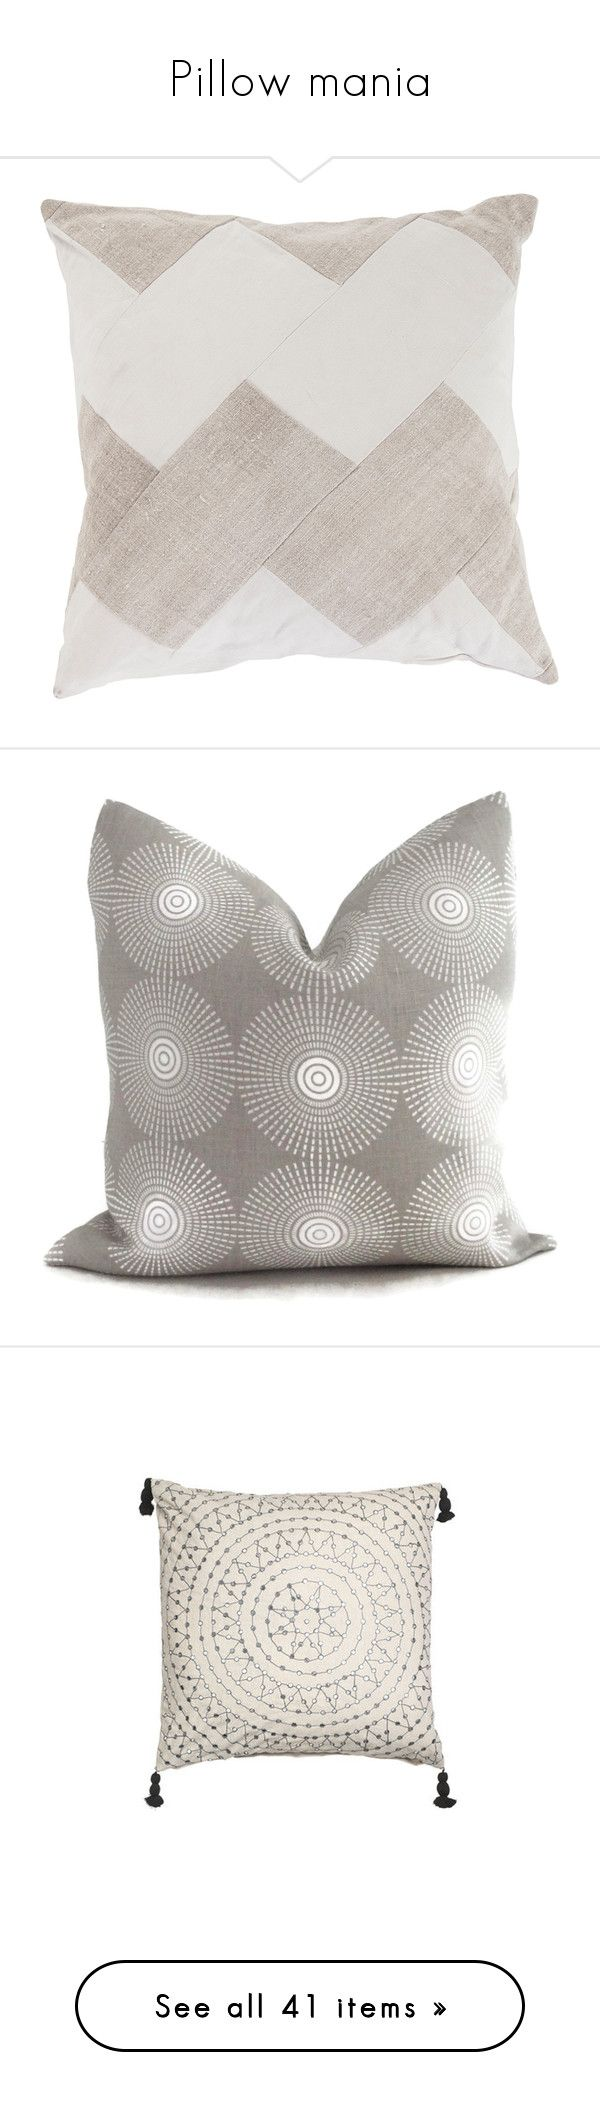 Shop home decor chevron stripes pillow from shop home decor -  Pillow Mania By Anna Lena Als Liked On Polyvore Featuring Home Home Decor Throw Pillows Pillow Cushions Chevron Home Decor Neutral Home Decor